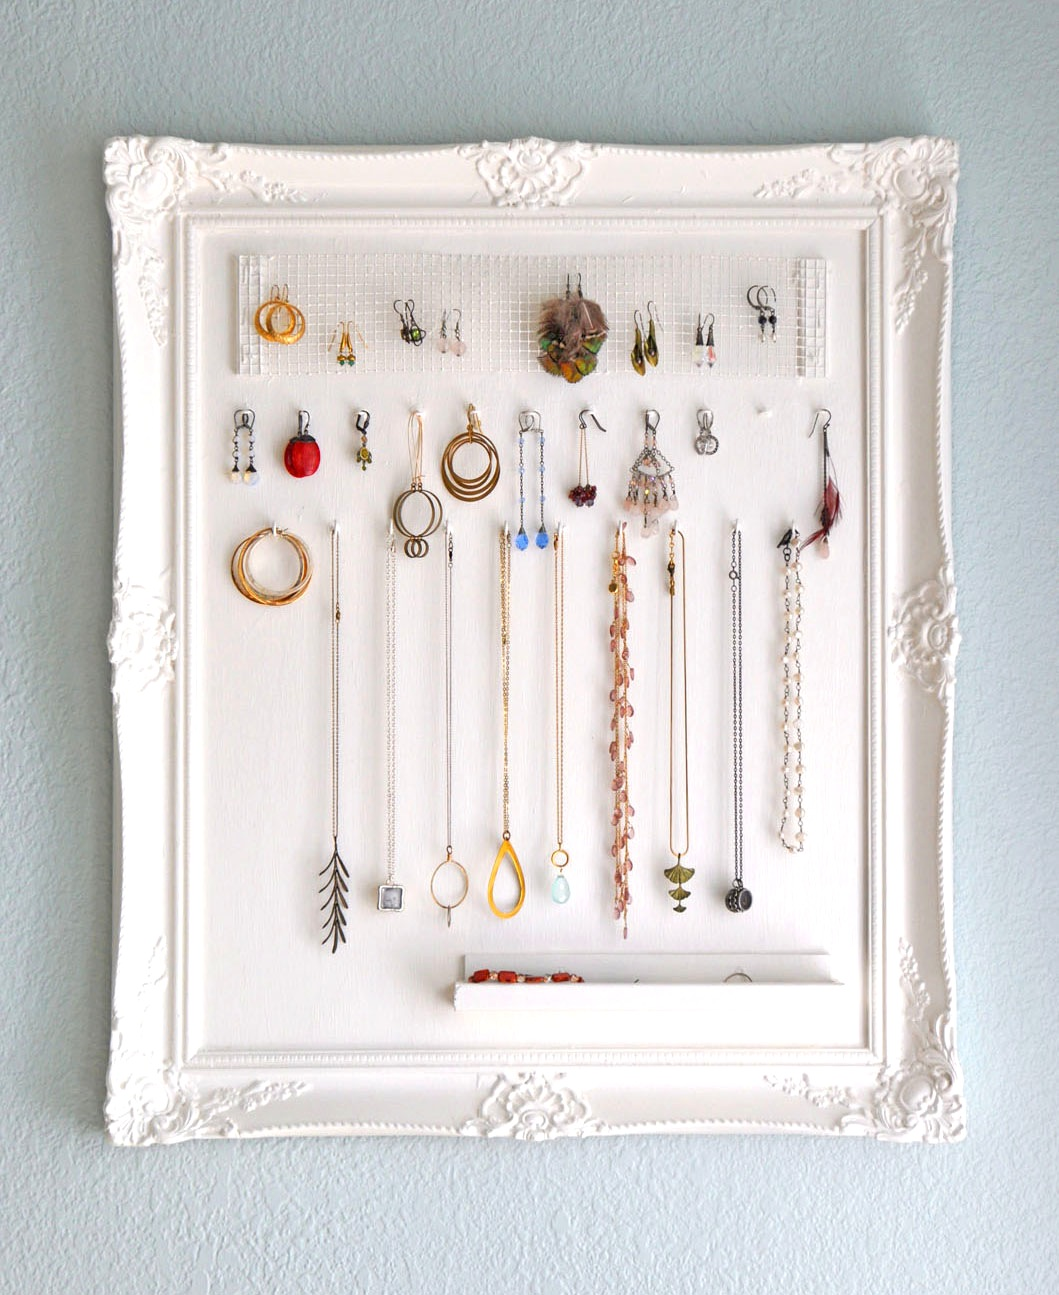 Schmuck Bilderrahmen 23 Jewelry Display Diys! | Sincerely Yours